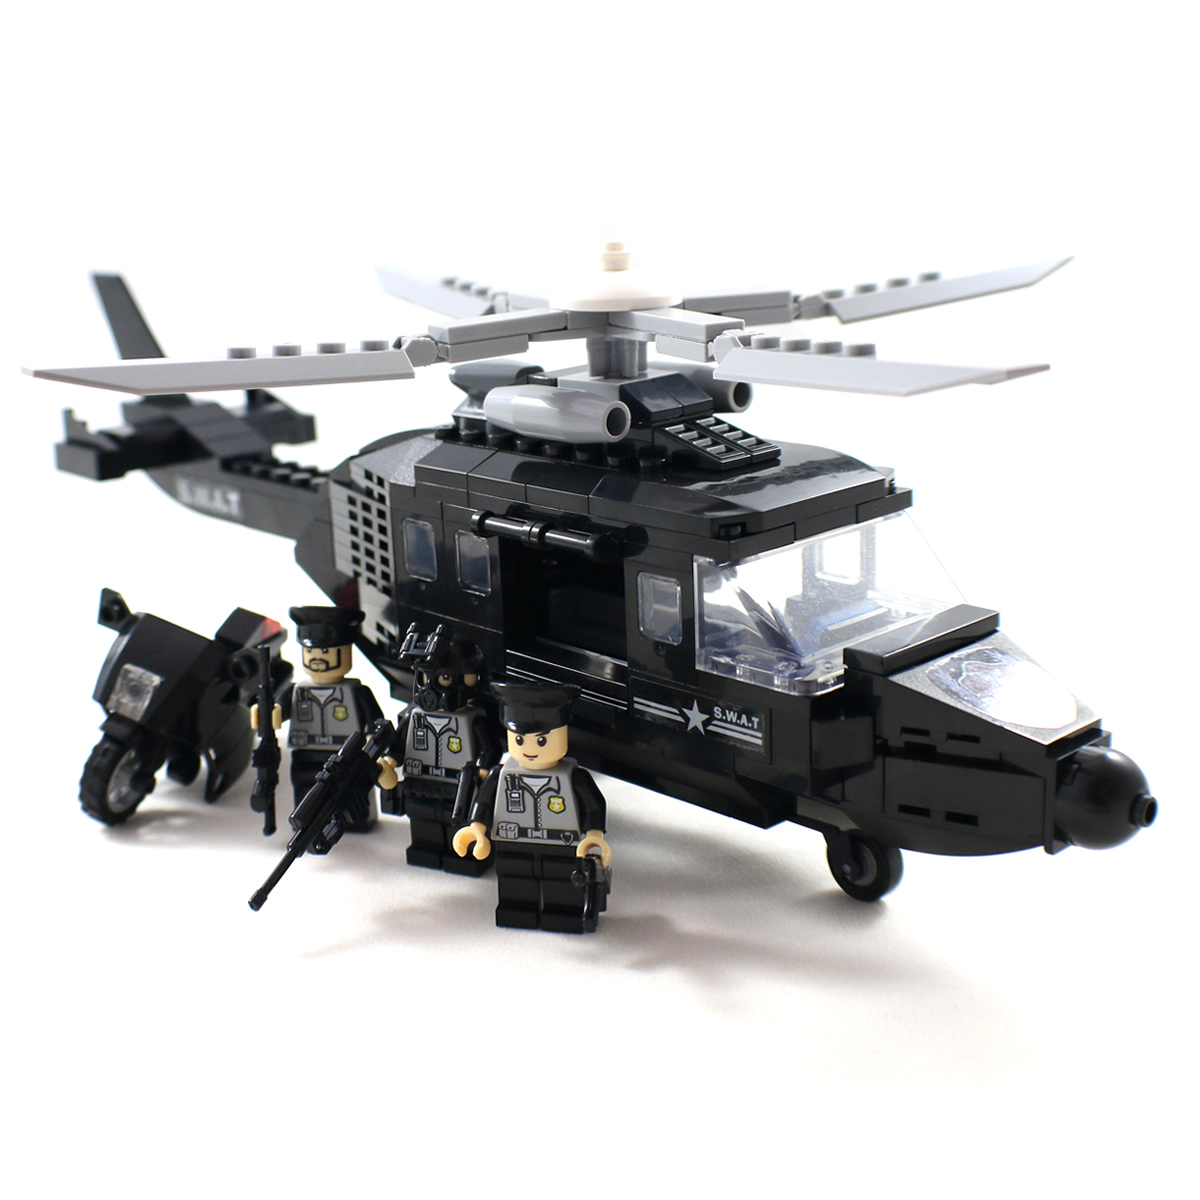 mini helicopter toy with 386629413 on 294724001 moreover Best Remote Control Helicopters For Kids besides Minibus also Lego Mobil Suit Lego Gundams in addition Rastar 114 Volvo Xc60 Rc Car Model Black P 43385.